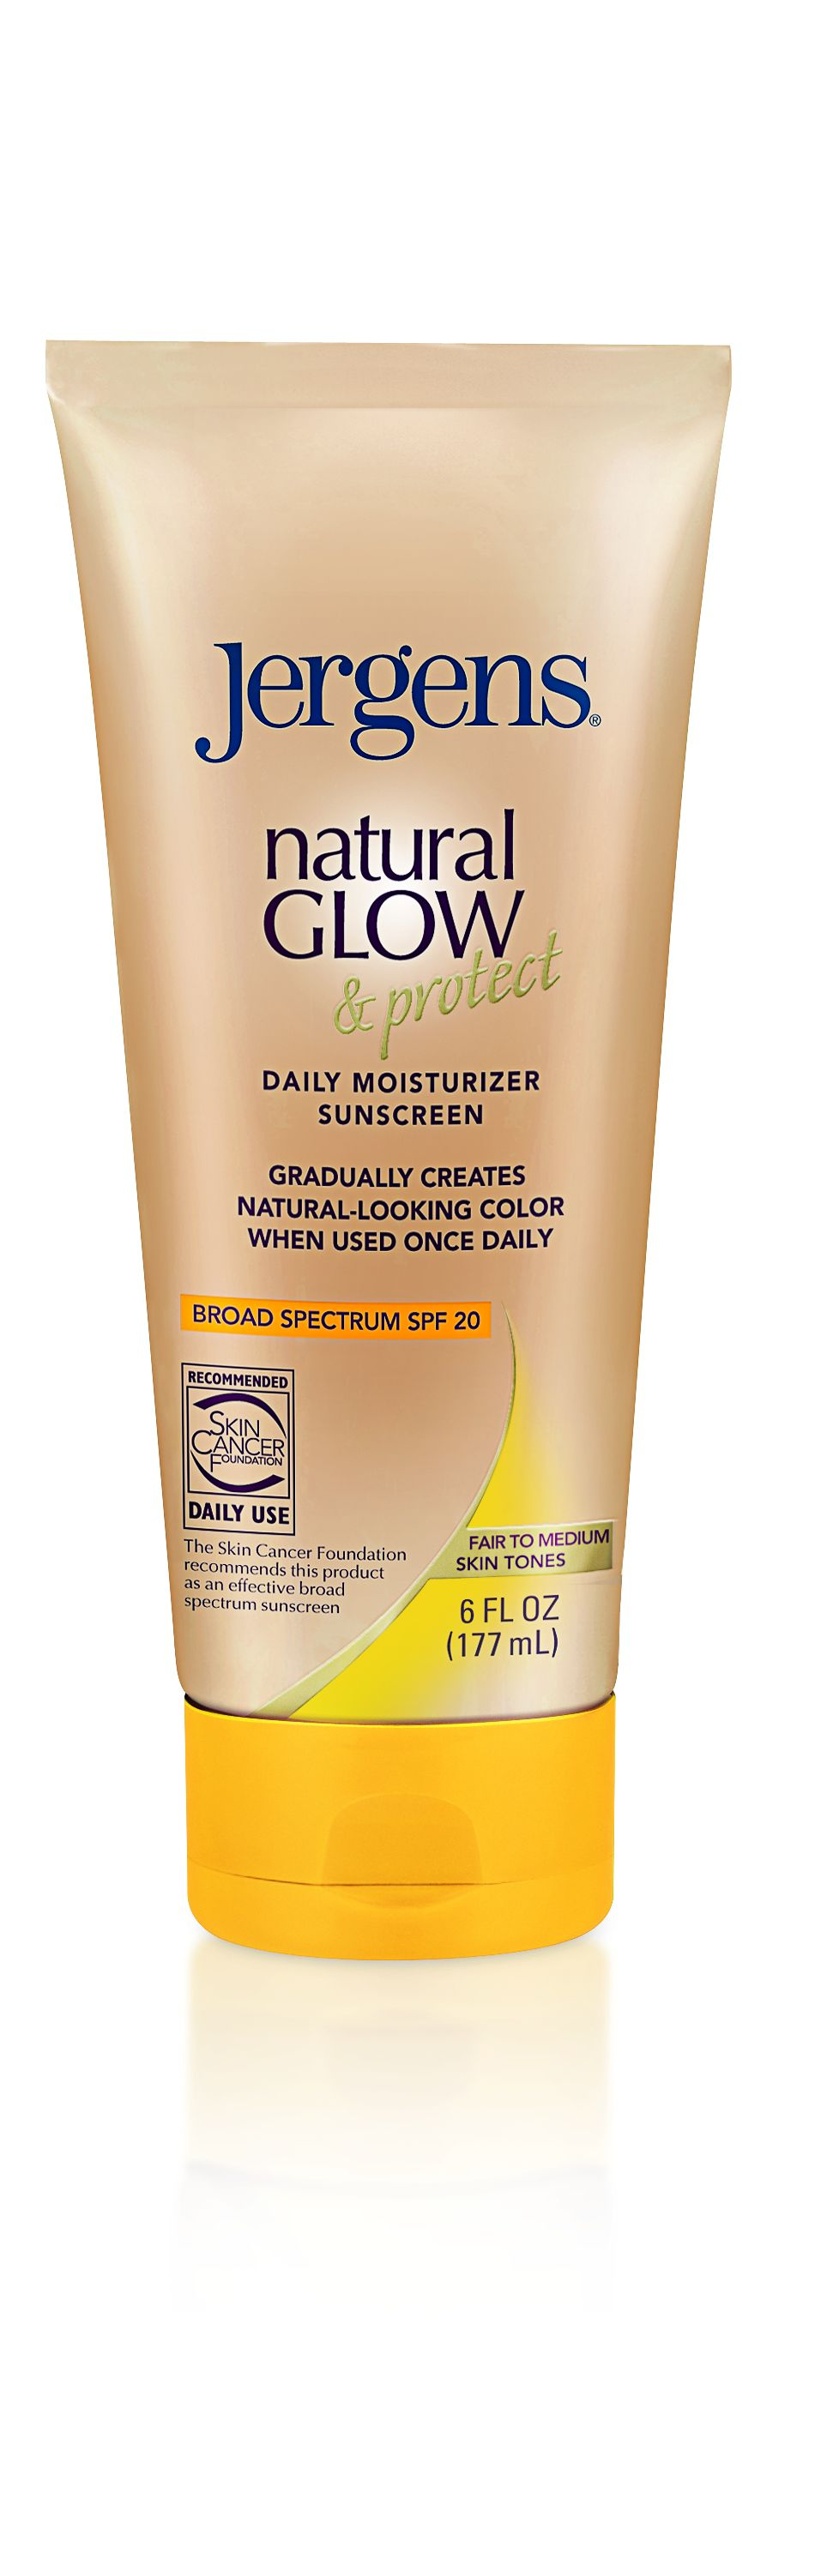 Jergens Natural Glow Face Daily Moisturizer Spf  Review